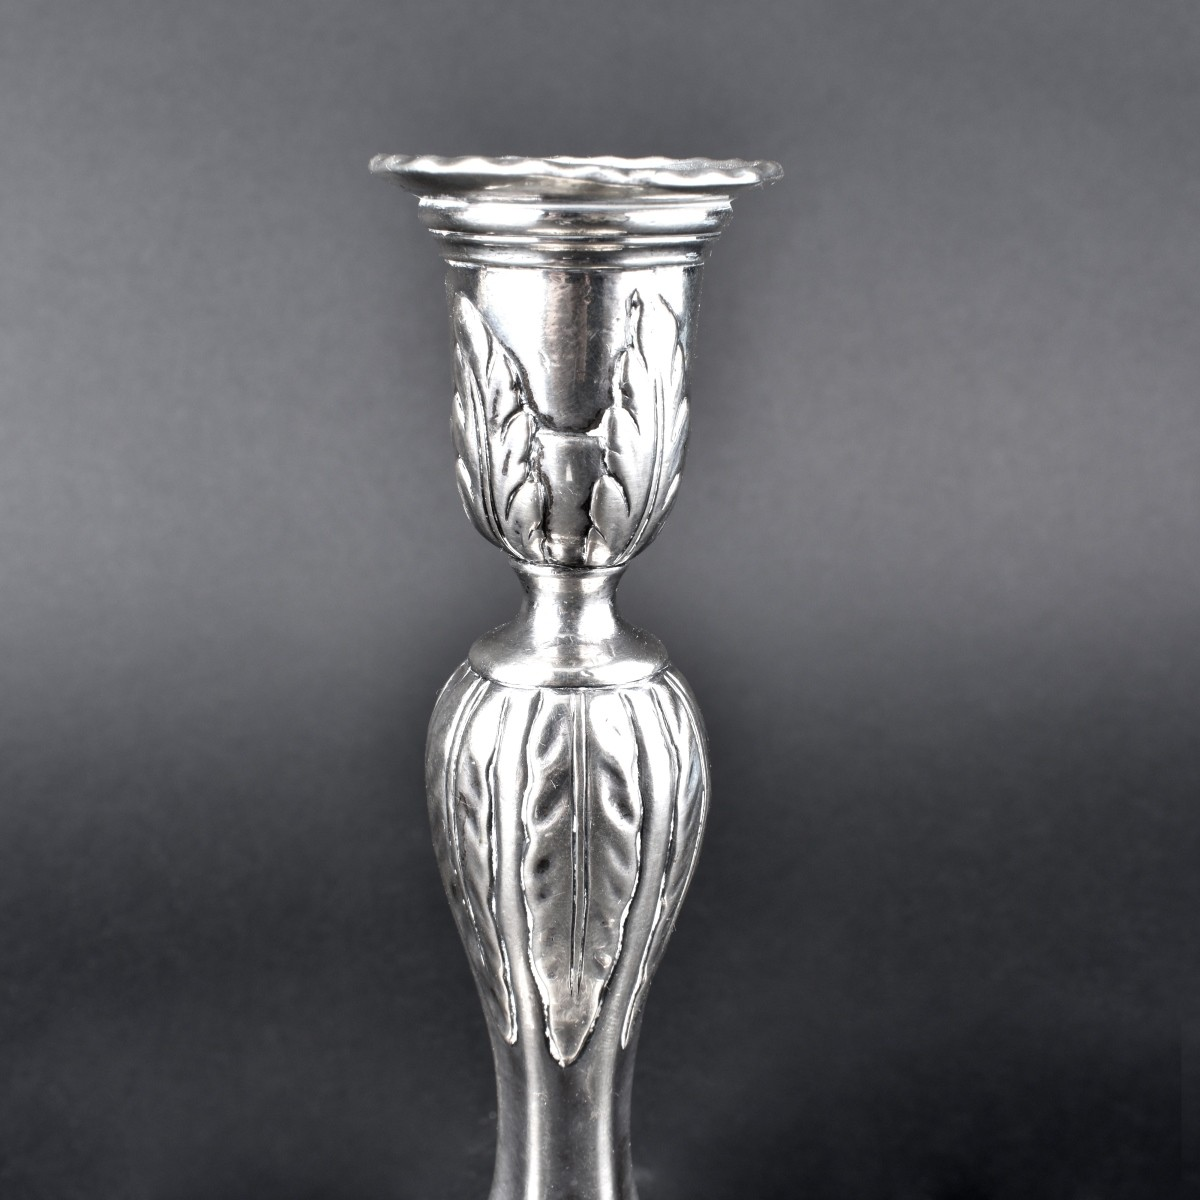 19th Century German Silver Plate Candlestick